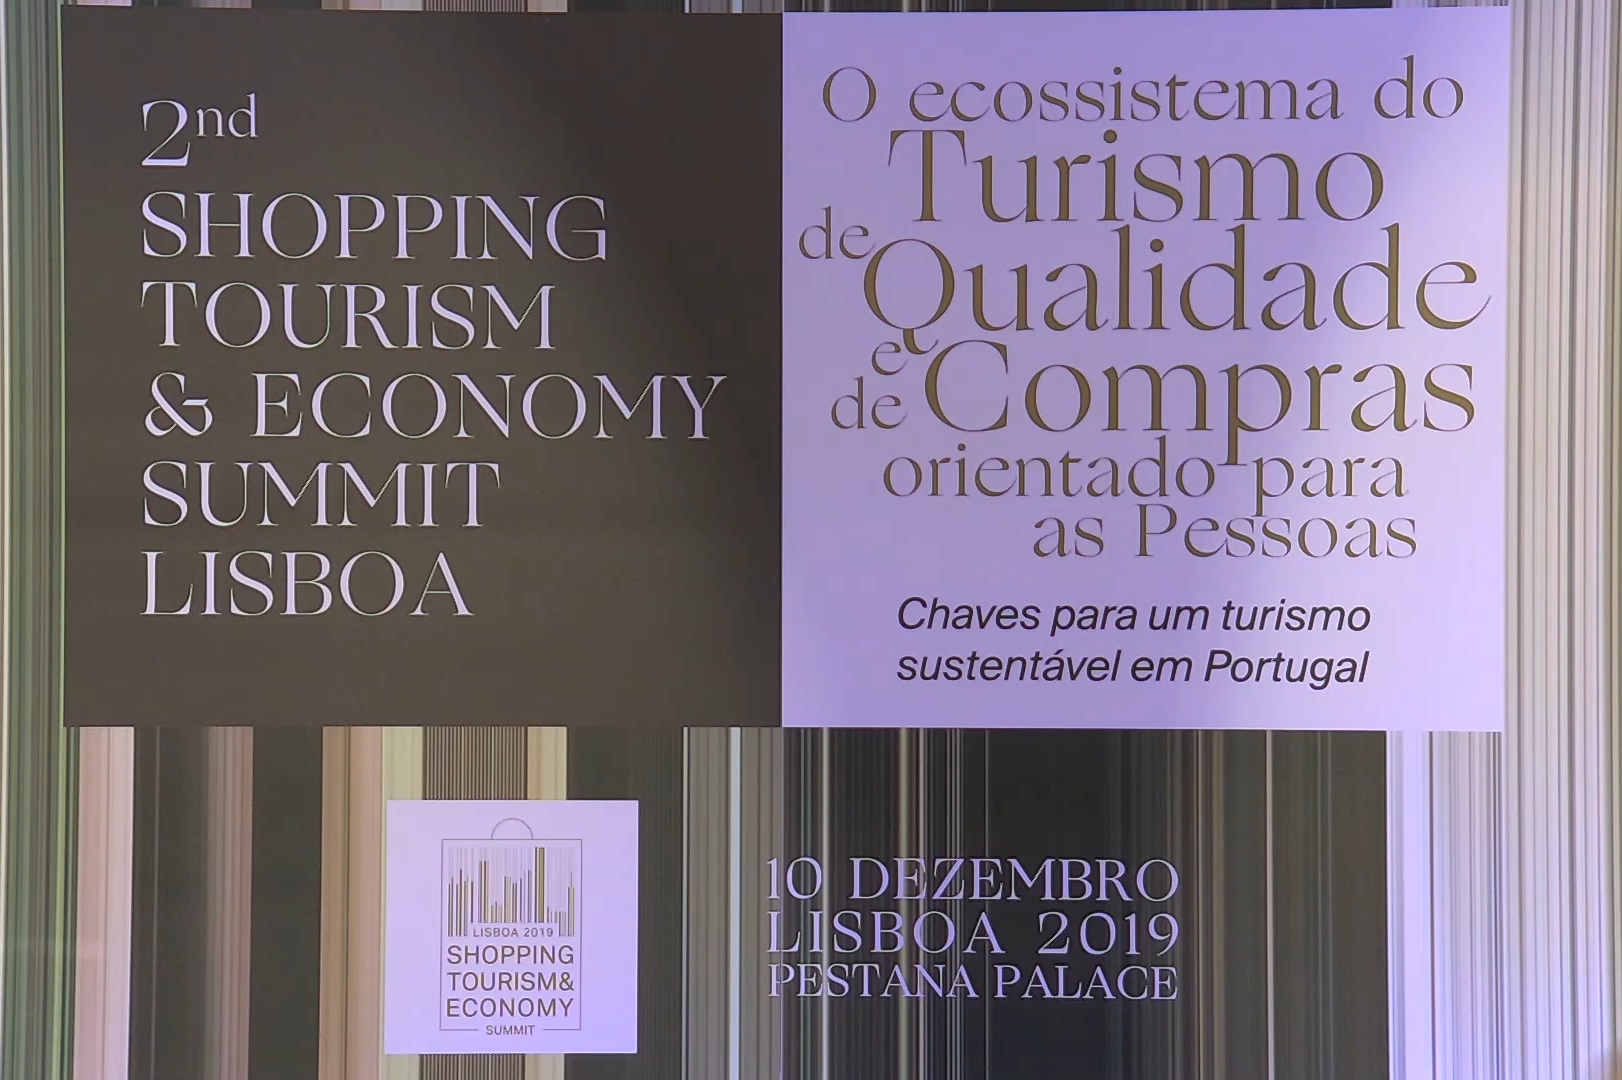 2nd Shopping Tourism Economy Summit Lisboa